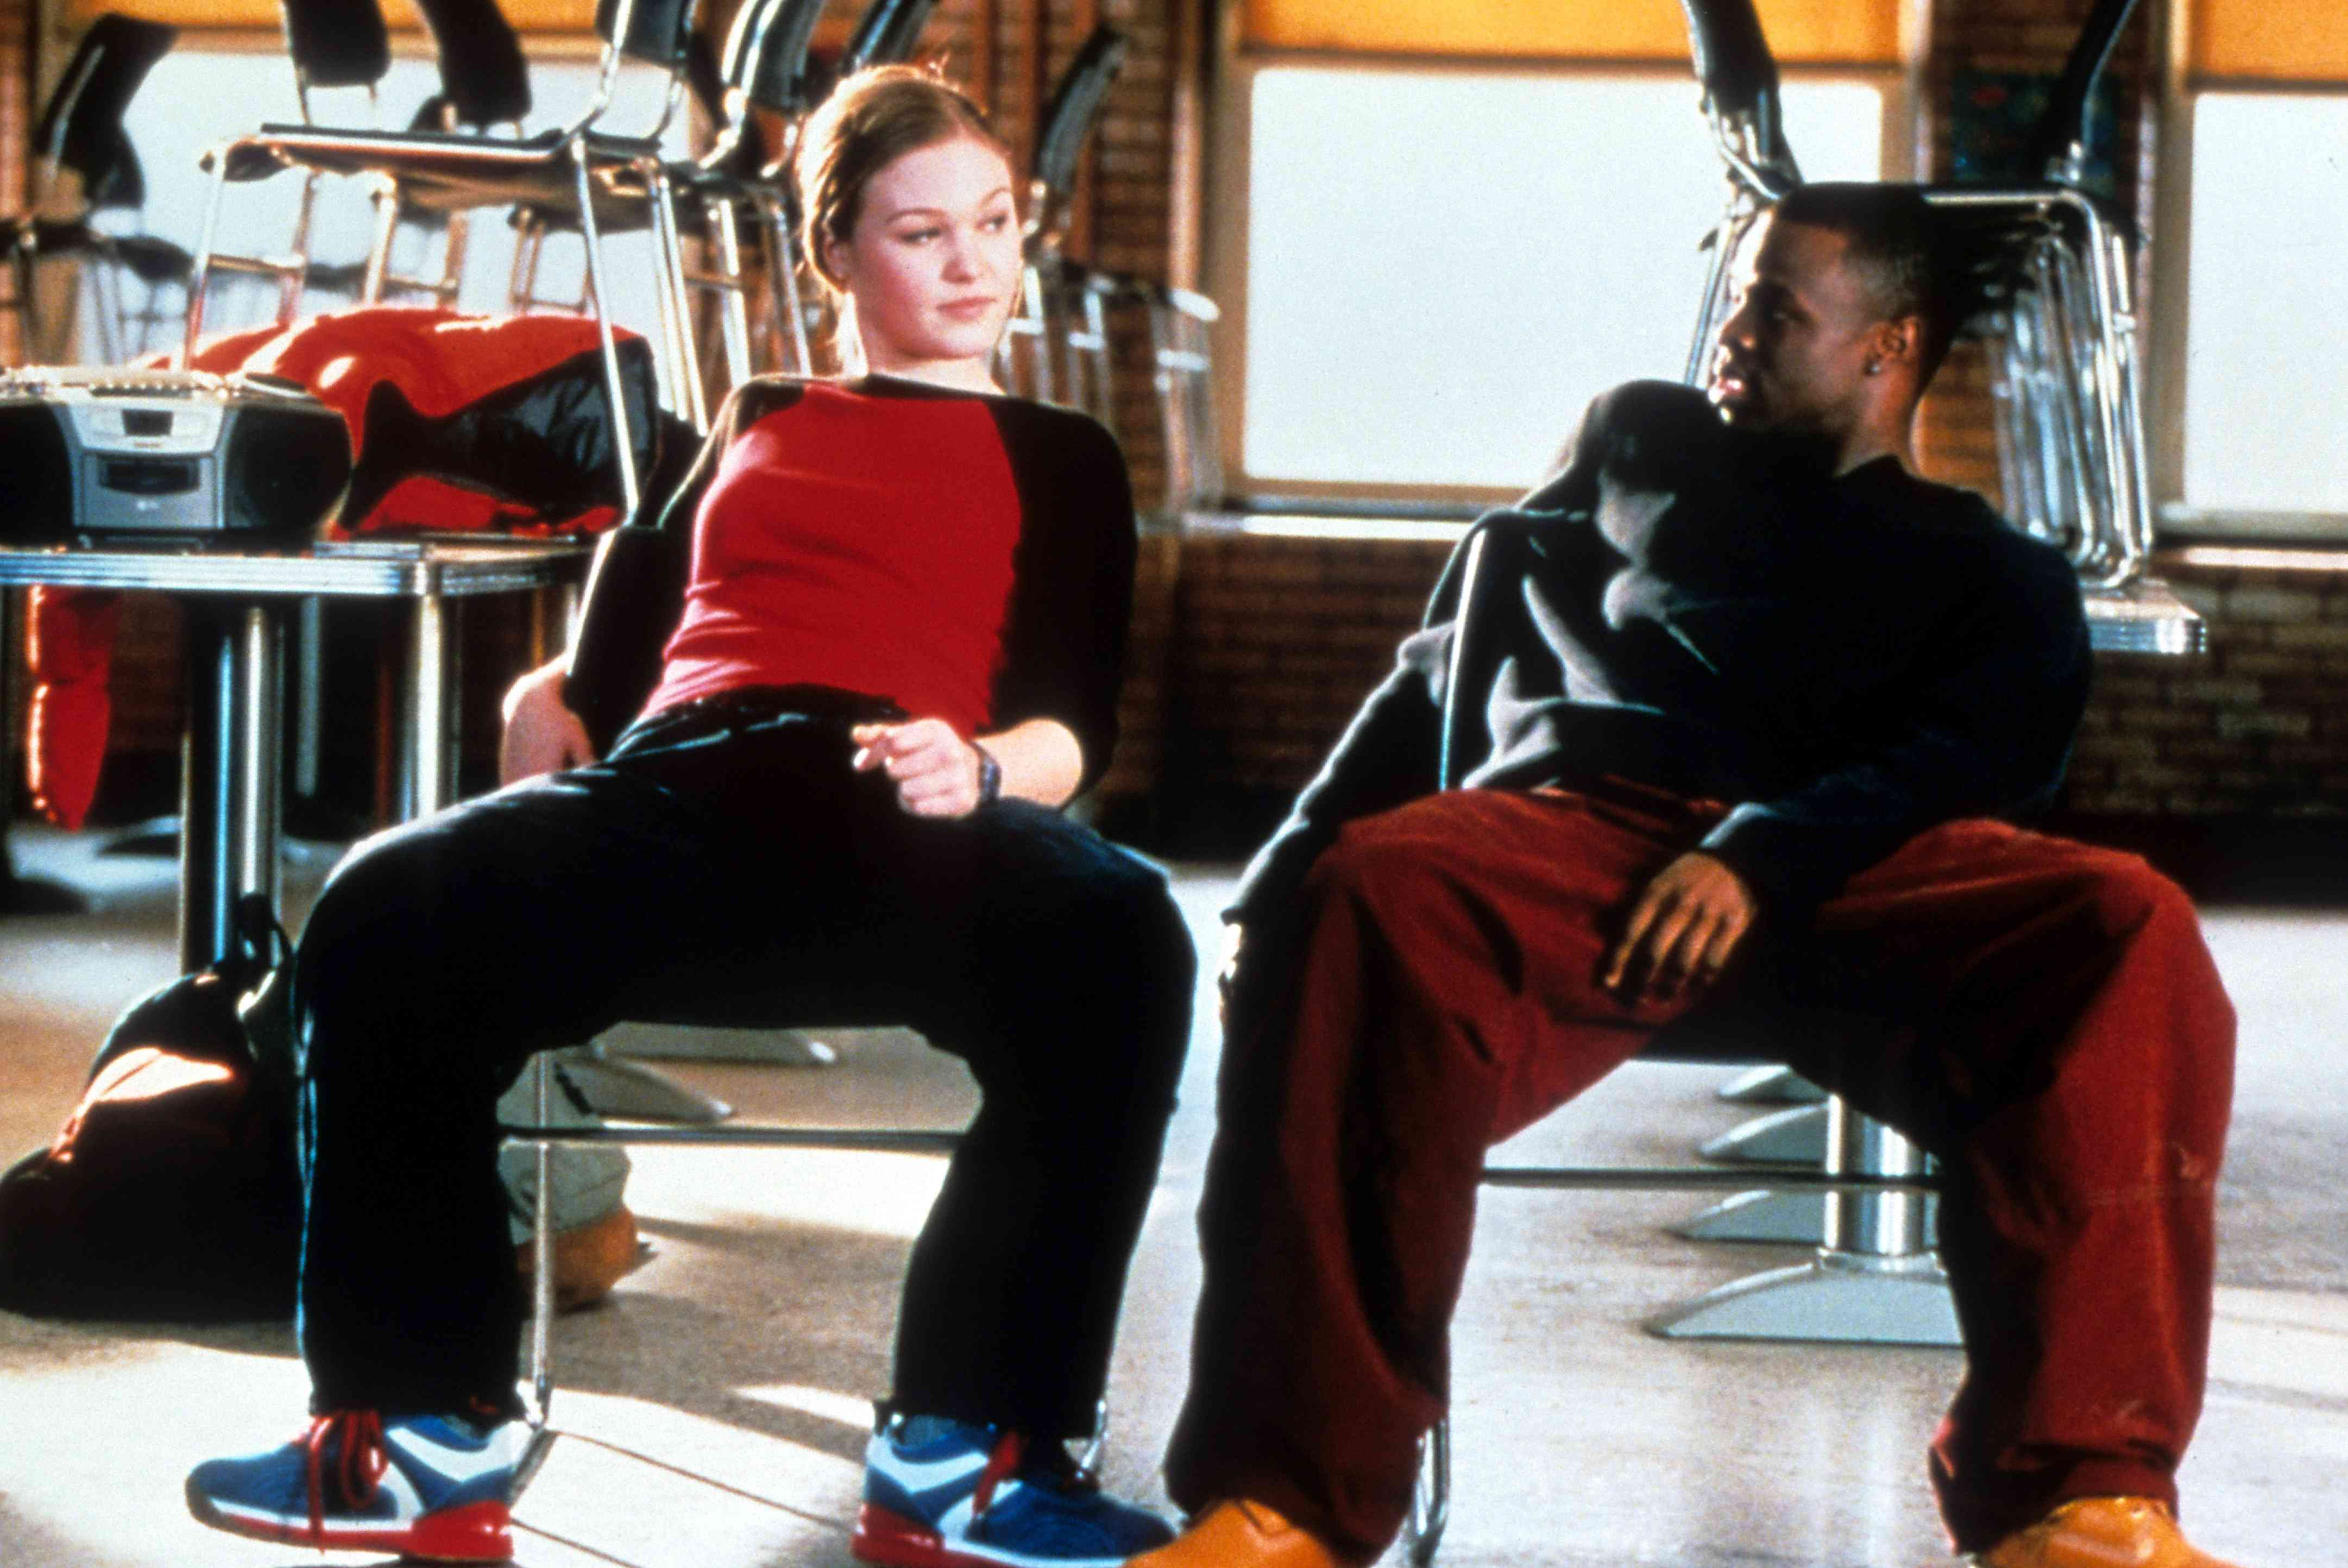 ulia Stiles sits with Sean Patrick Thomas in a scene from the film 'Save The Last Dance', 2001.